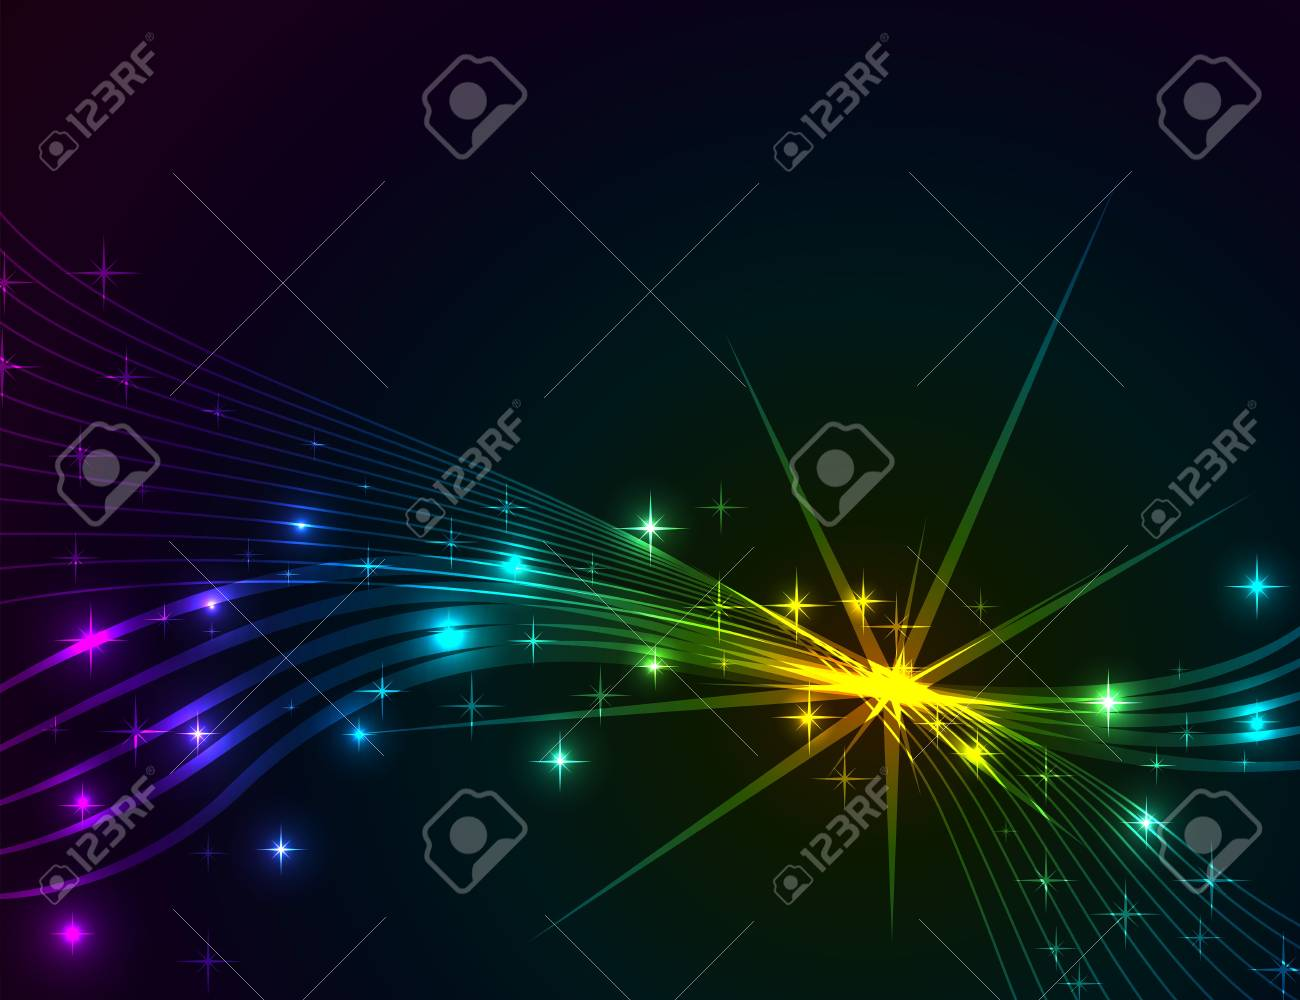 Colorful lights abstract dark vector background Stock Vector - 19883957